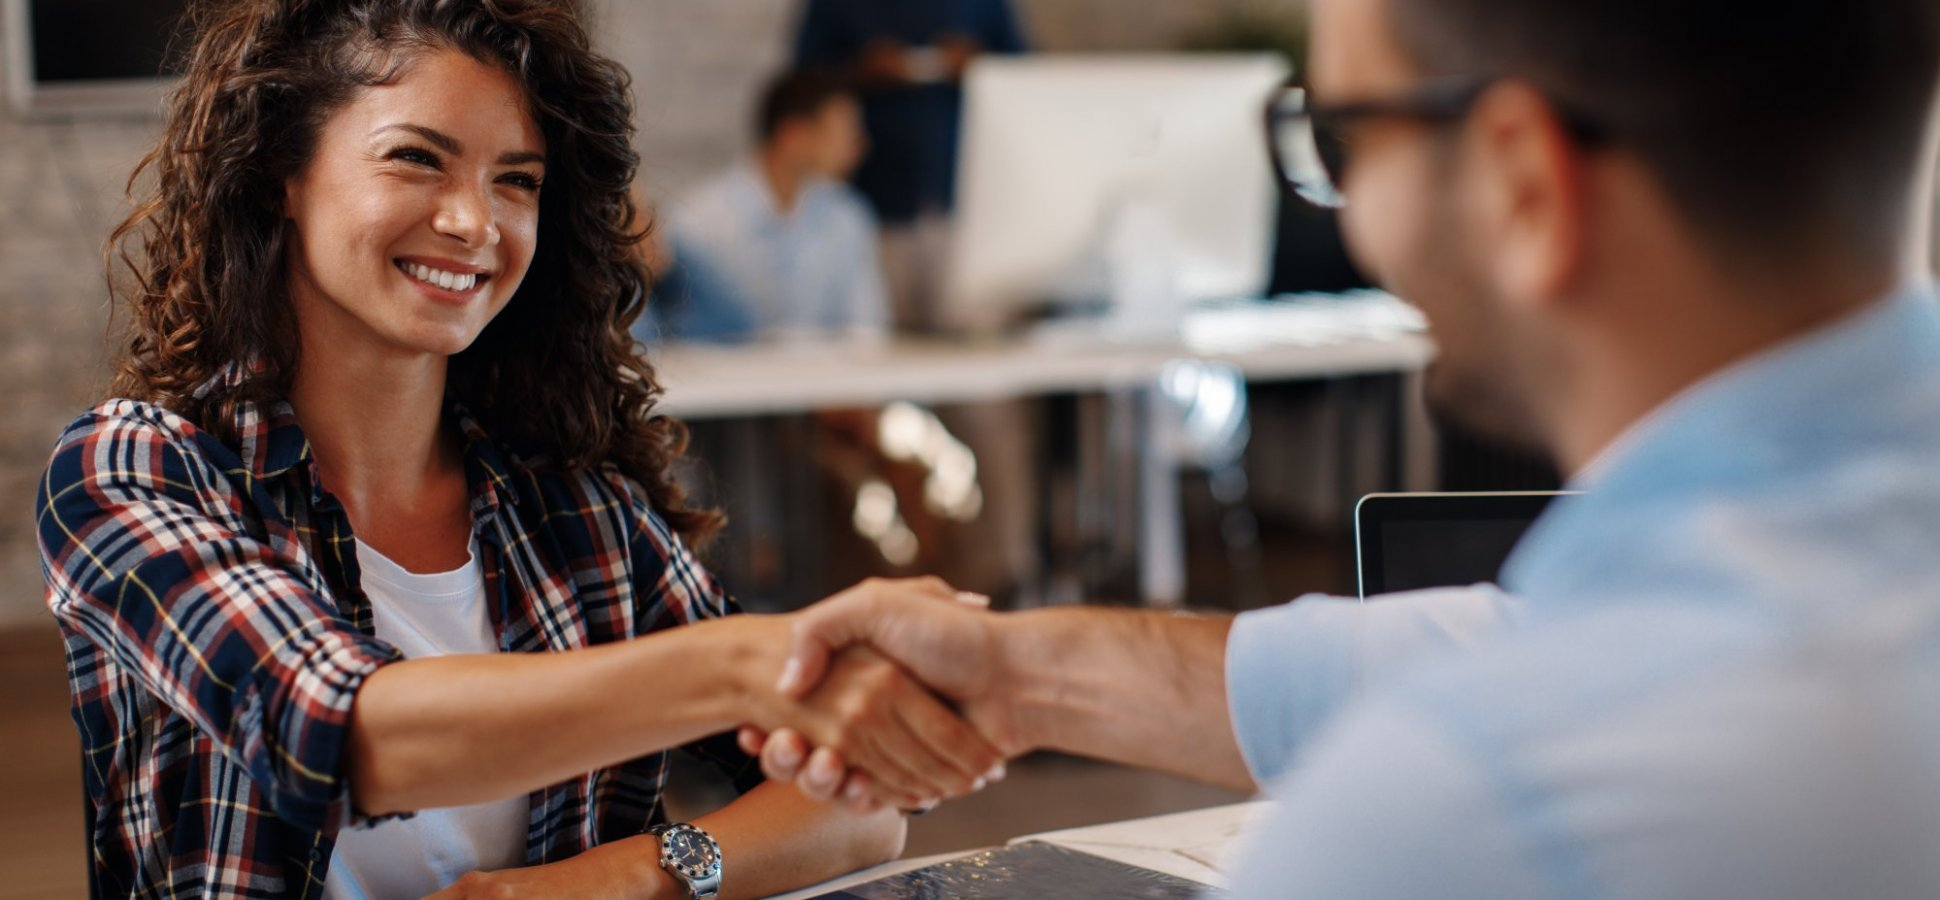 4 Questions You Should Always Ask When You Call a Potential Hire's References